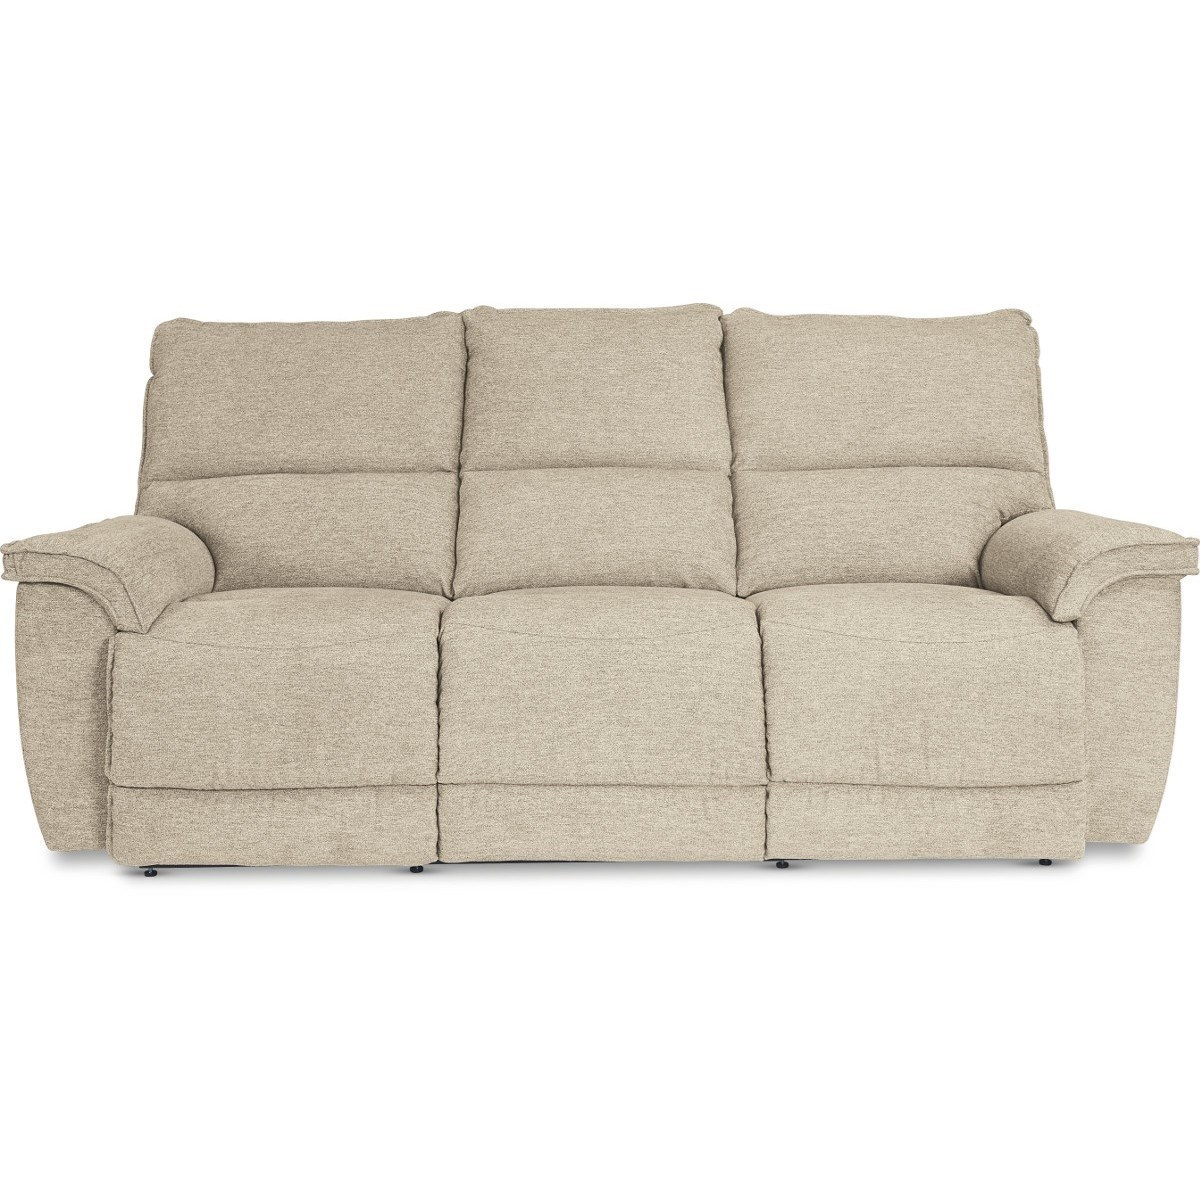 Halifax Inspirational Sofa Bed La Z Boy Norris Casual Power Reclining Sofa With Usb Charging